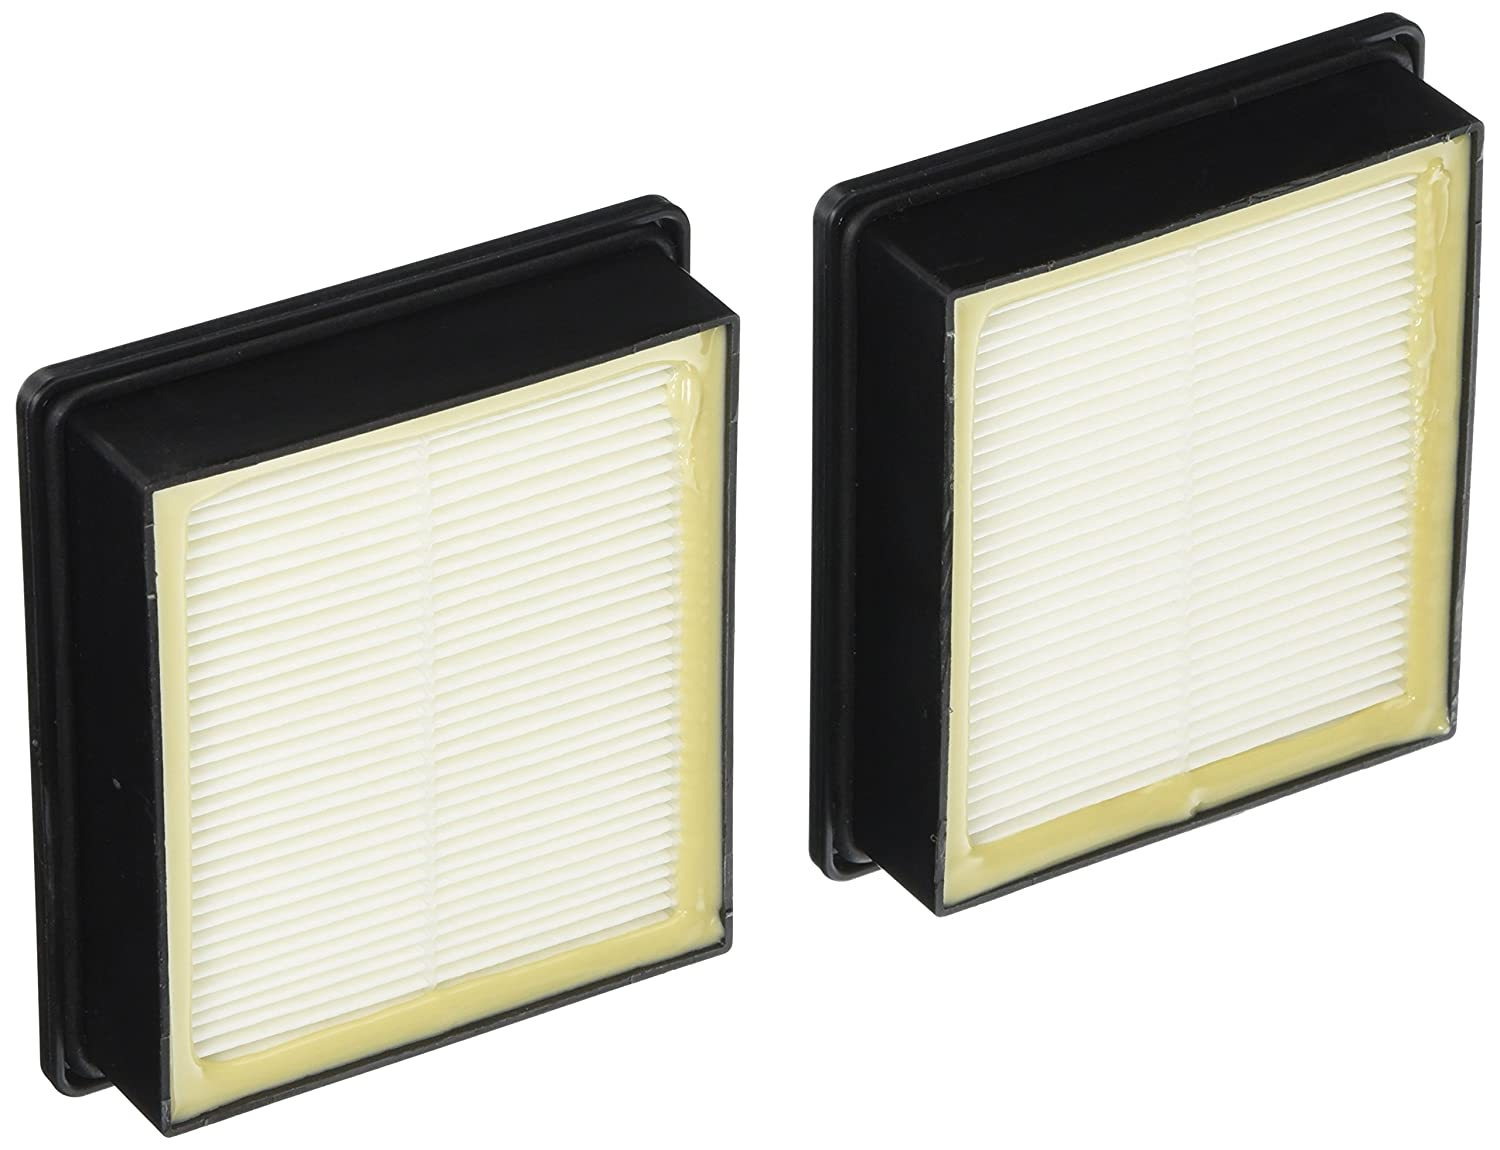 ProTeam 107315 HEPA Replacement Filter Twin Pack, HEPA Media Vacuum Filter